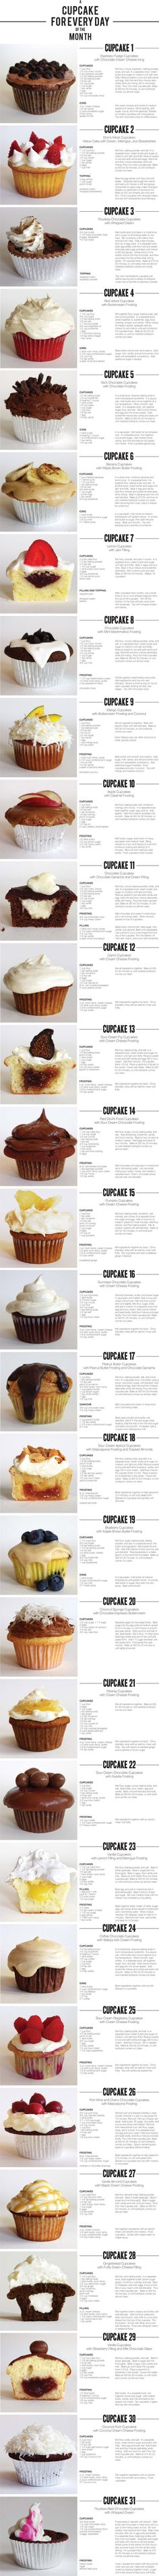 A Cupcake For Every Day of the Month!